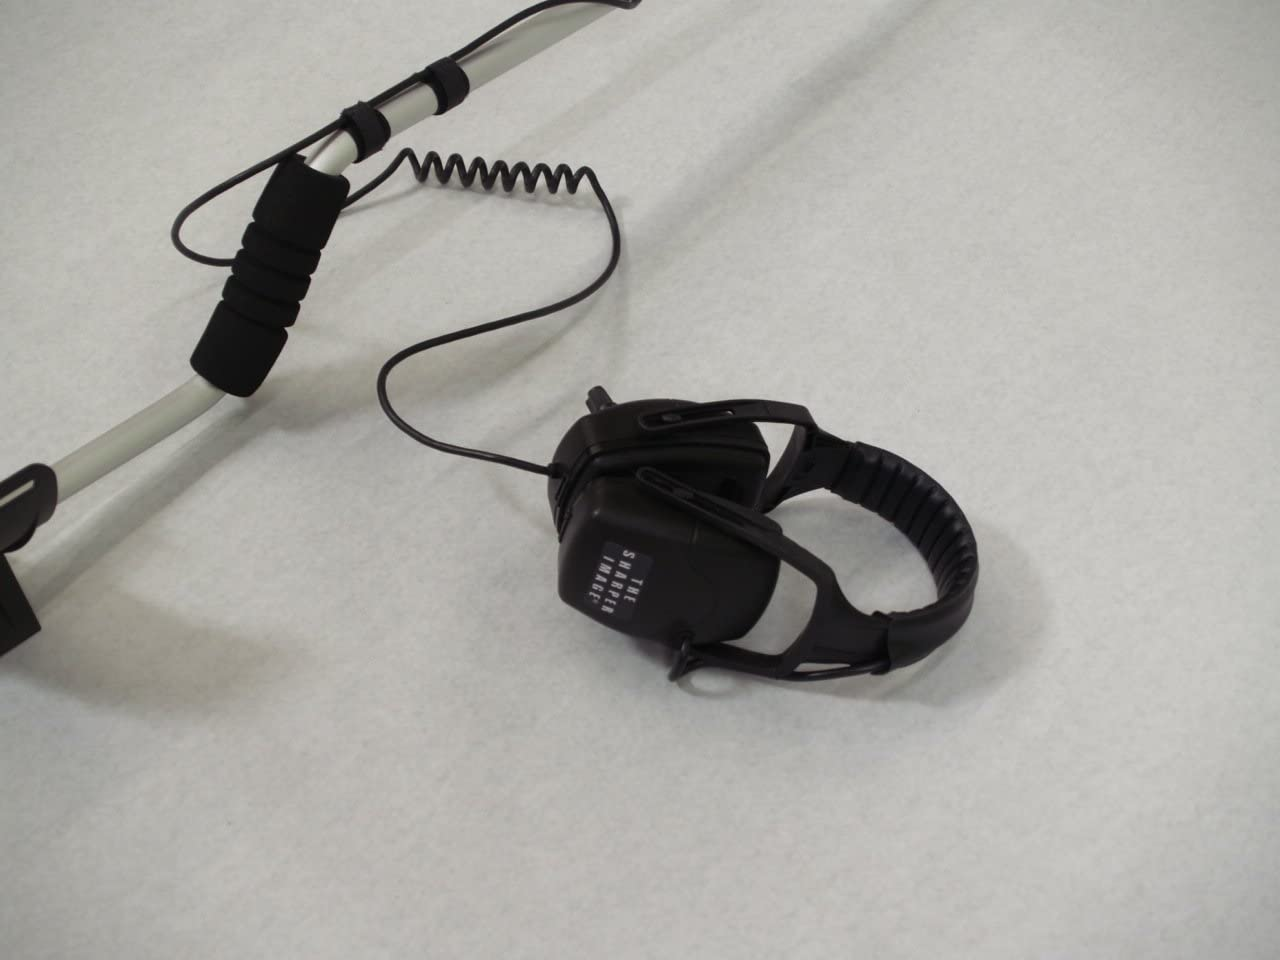 The Sharper Image TSI-22 FEATHER 22 METAL DETECTOR